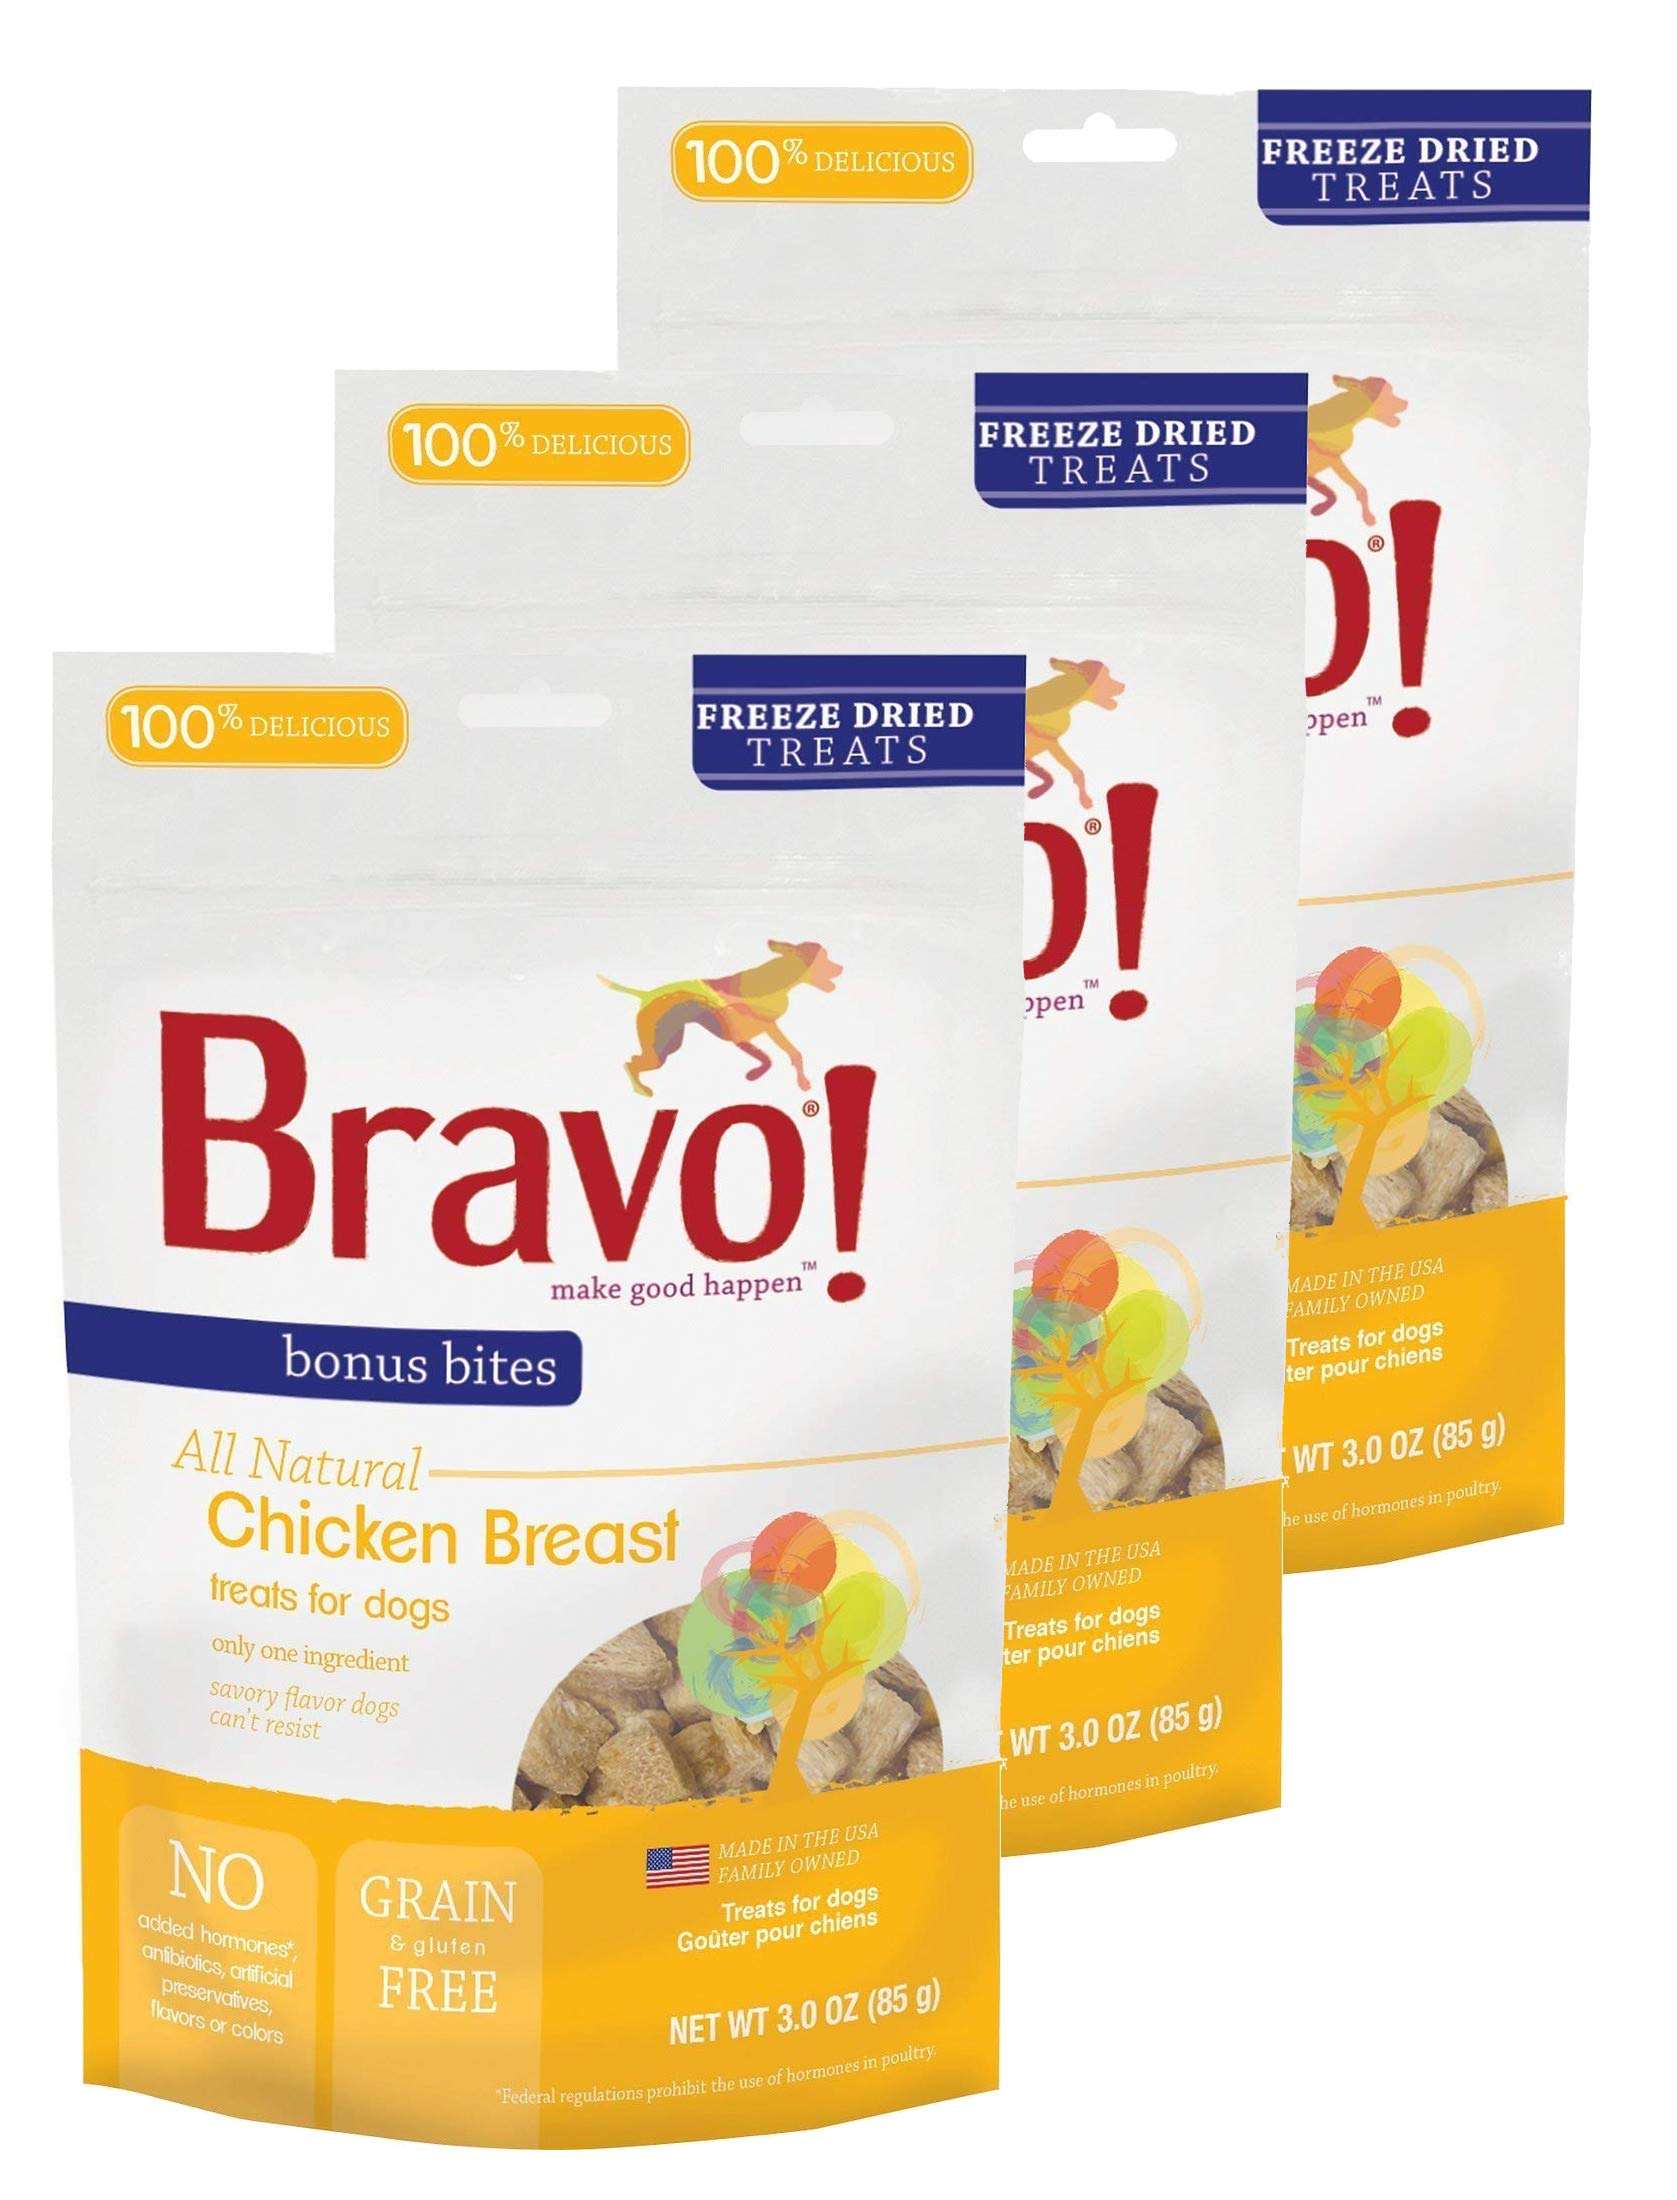 Bravo! Treats for Dogs Freeze Dried Chicken Breast - All Natural - Grain Free - 3 oz. 3 Pack by Bravo!